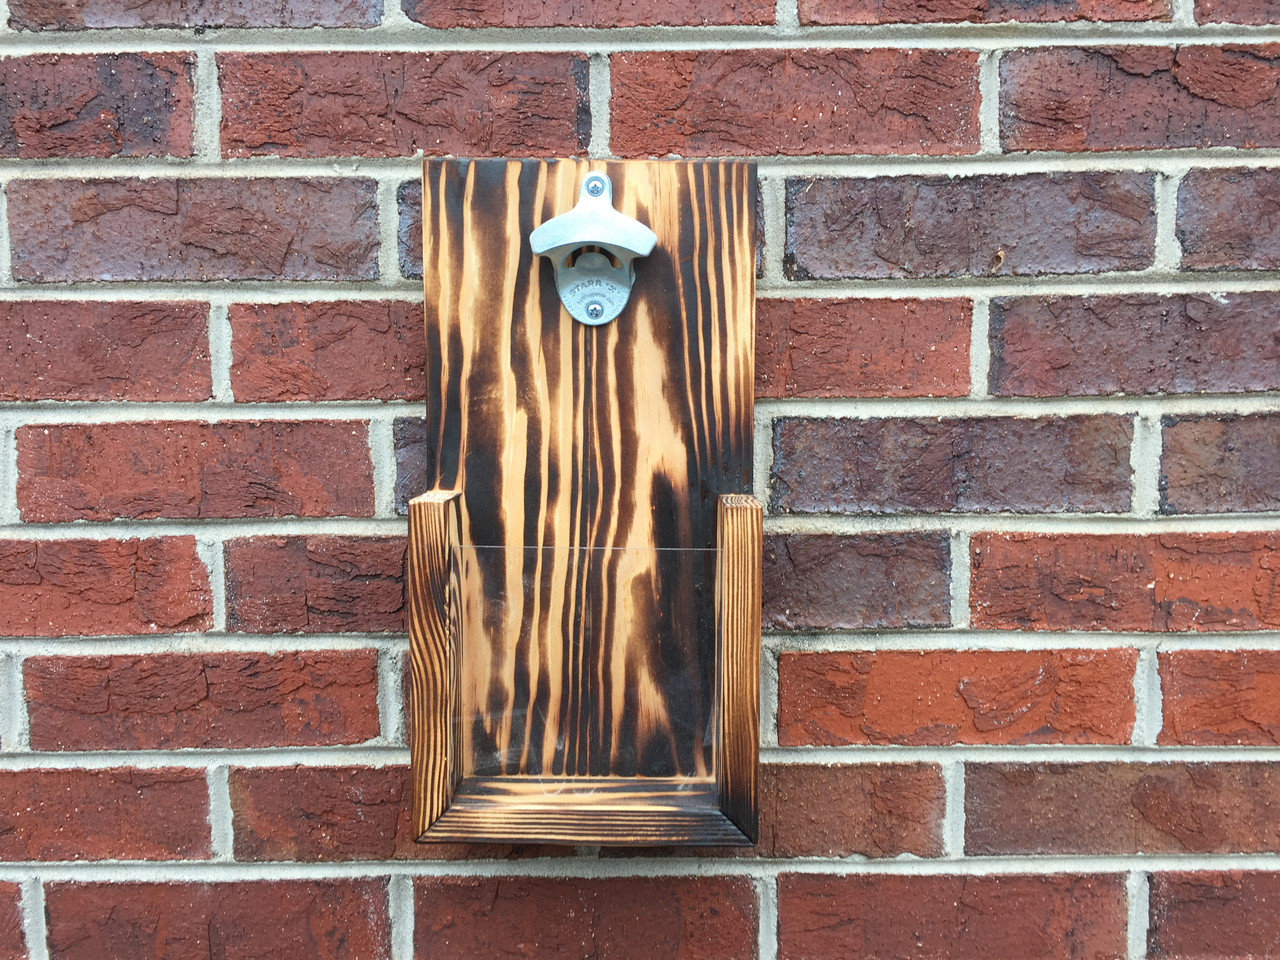 Custom Rustic Wall Hanging Bottle Opener Burned Wood. Where To Print Posters Near Me. Guidelines Signs. Tongue Signs Of Stroke. Problem Signs. Droop Signs Of Stroke. Ecobeast Decals. Symptom Index Signs. Mall Signs